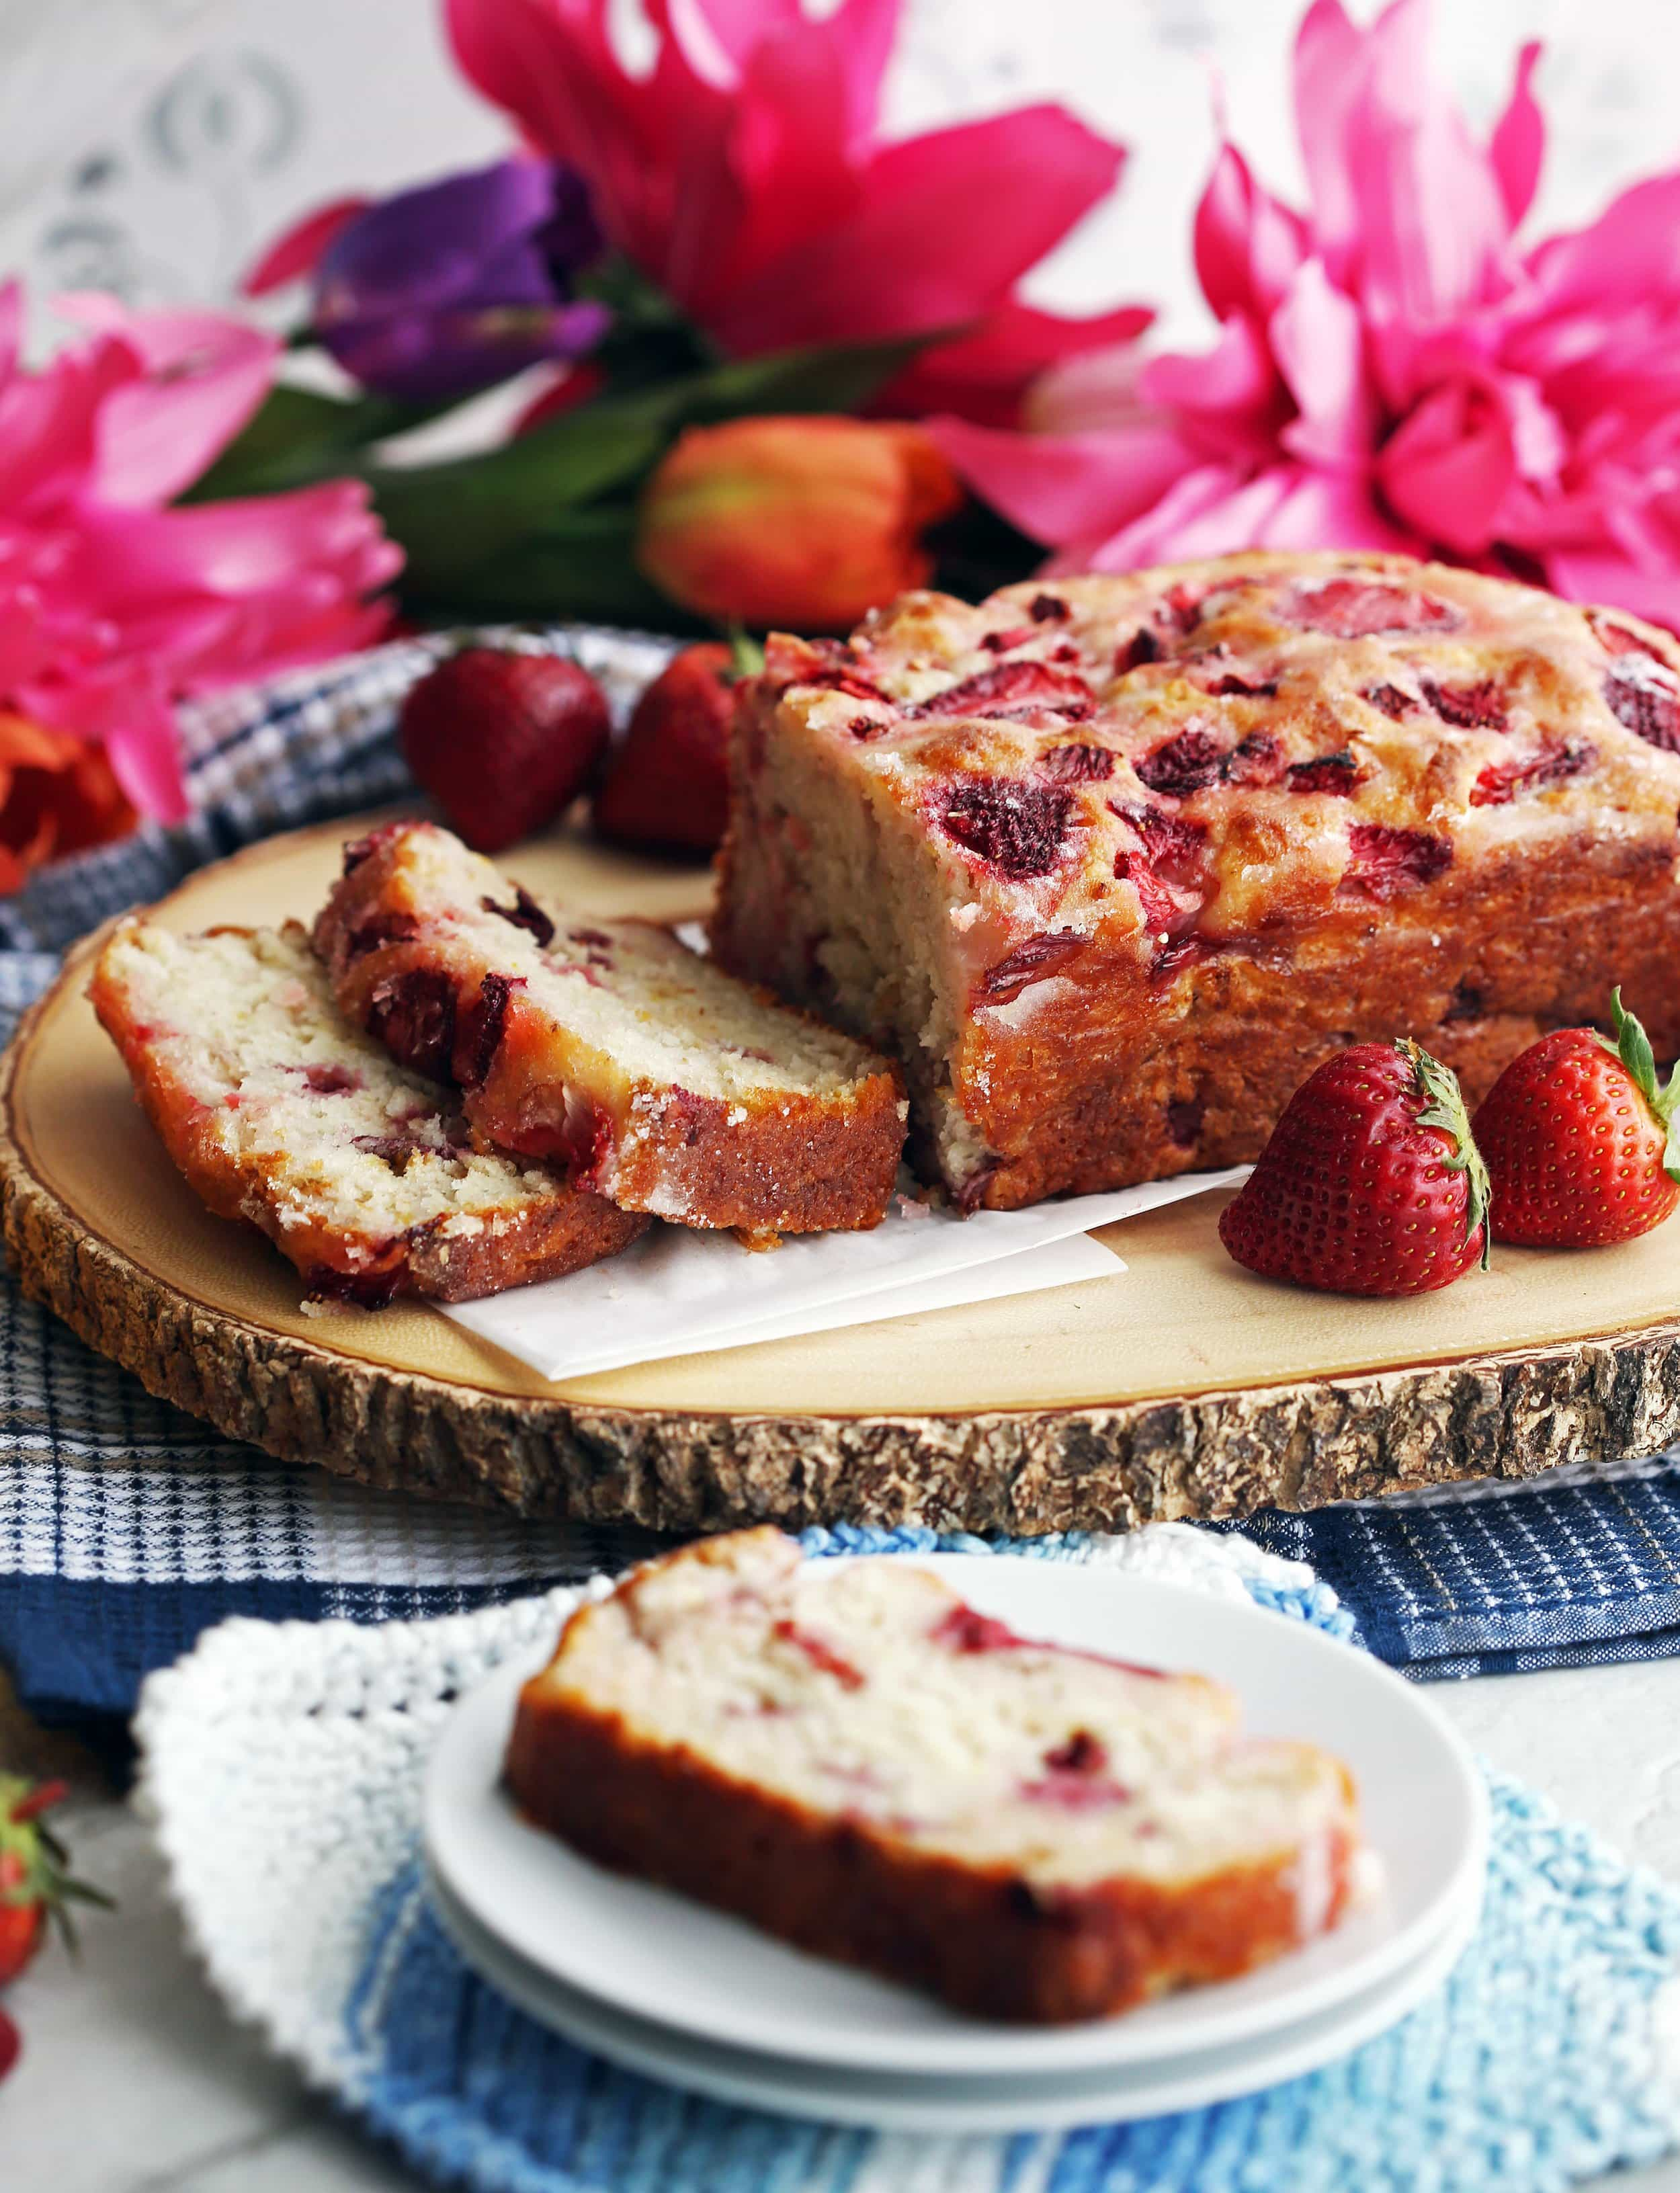 A freshly baked loaf of Strawberry Lemon Yogurt Quick Bread on a large wooden platter.